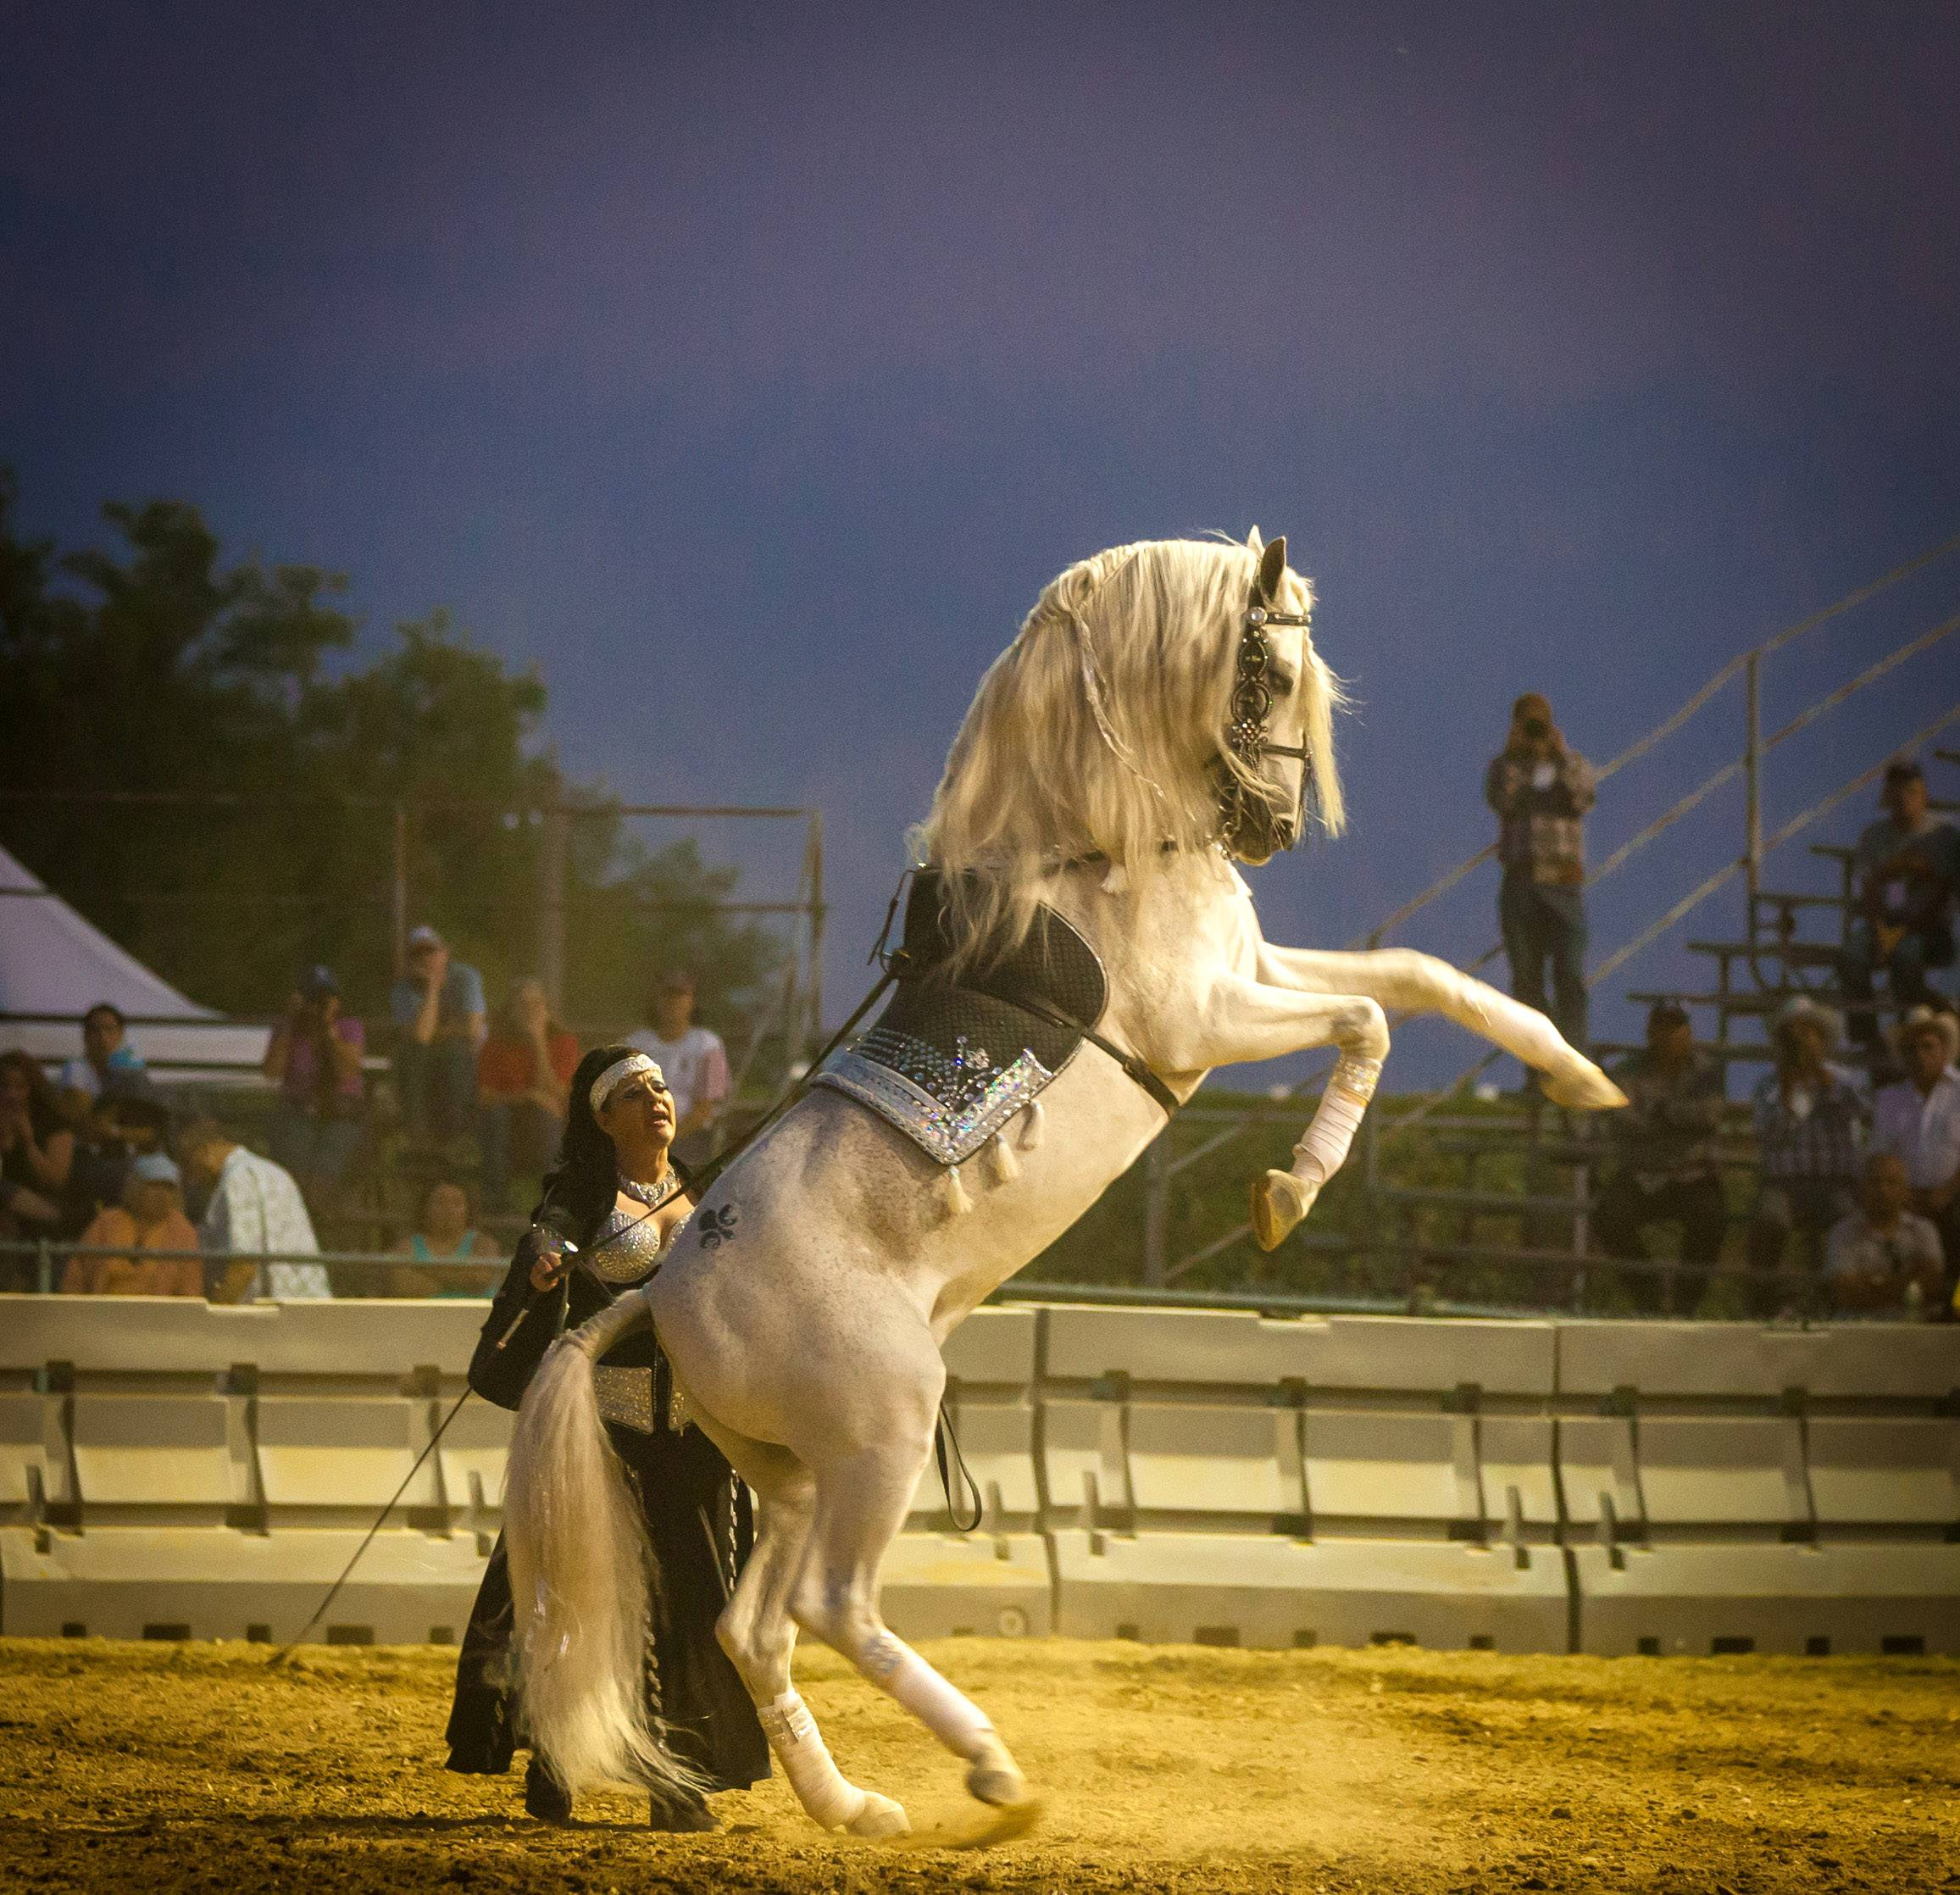 Desiree Herrmann, a trainer at the Monte Cristo Equestrian Center in Maple Park, performs with her stallion, Guapo, last year at the Kane County Fairgrounds.